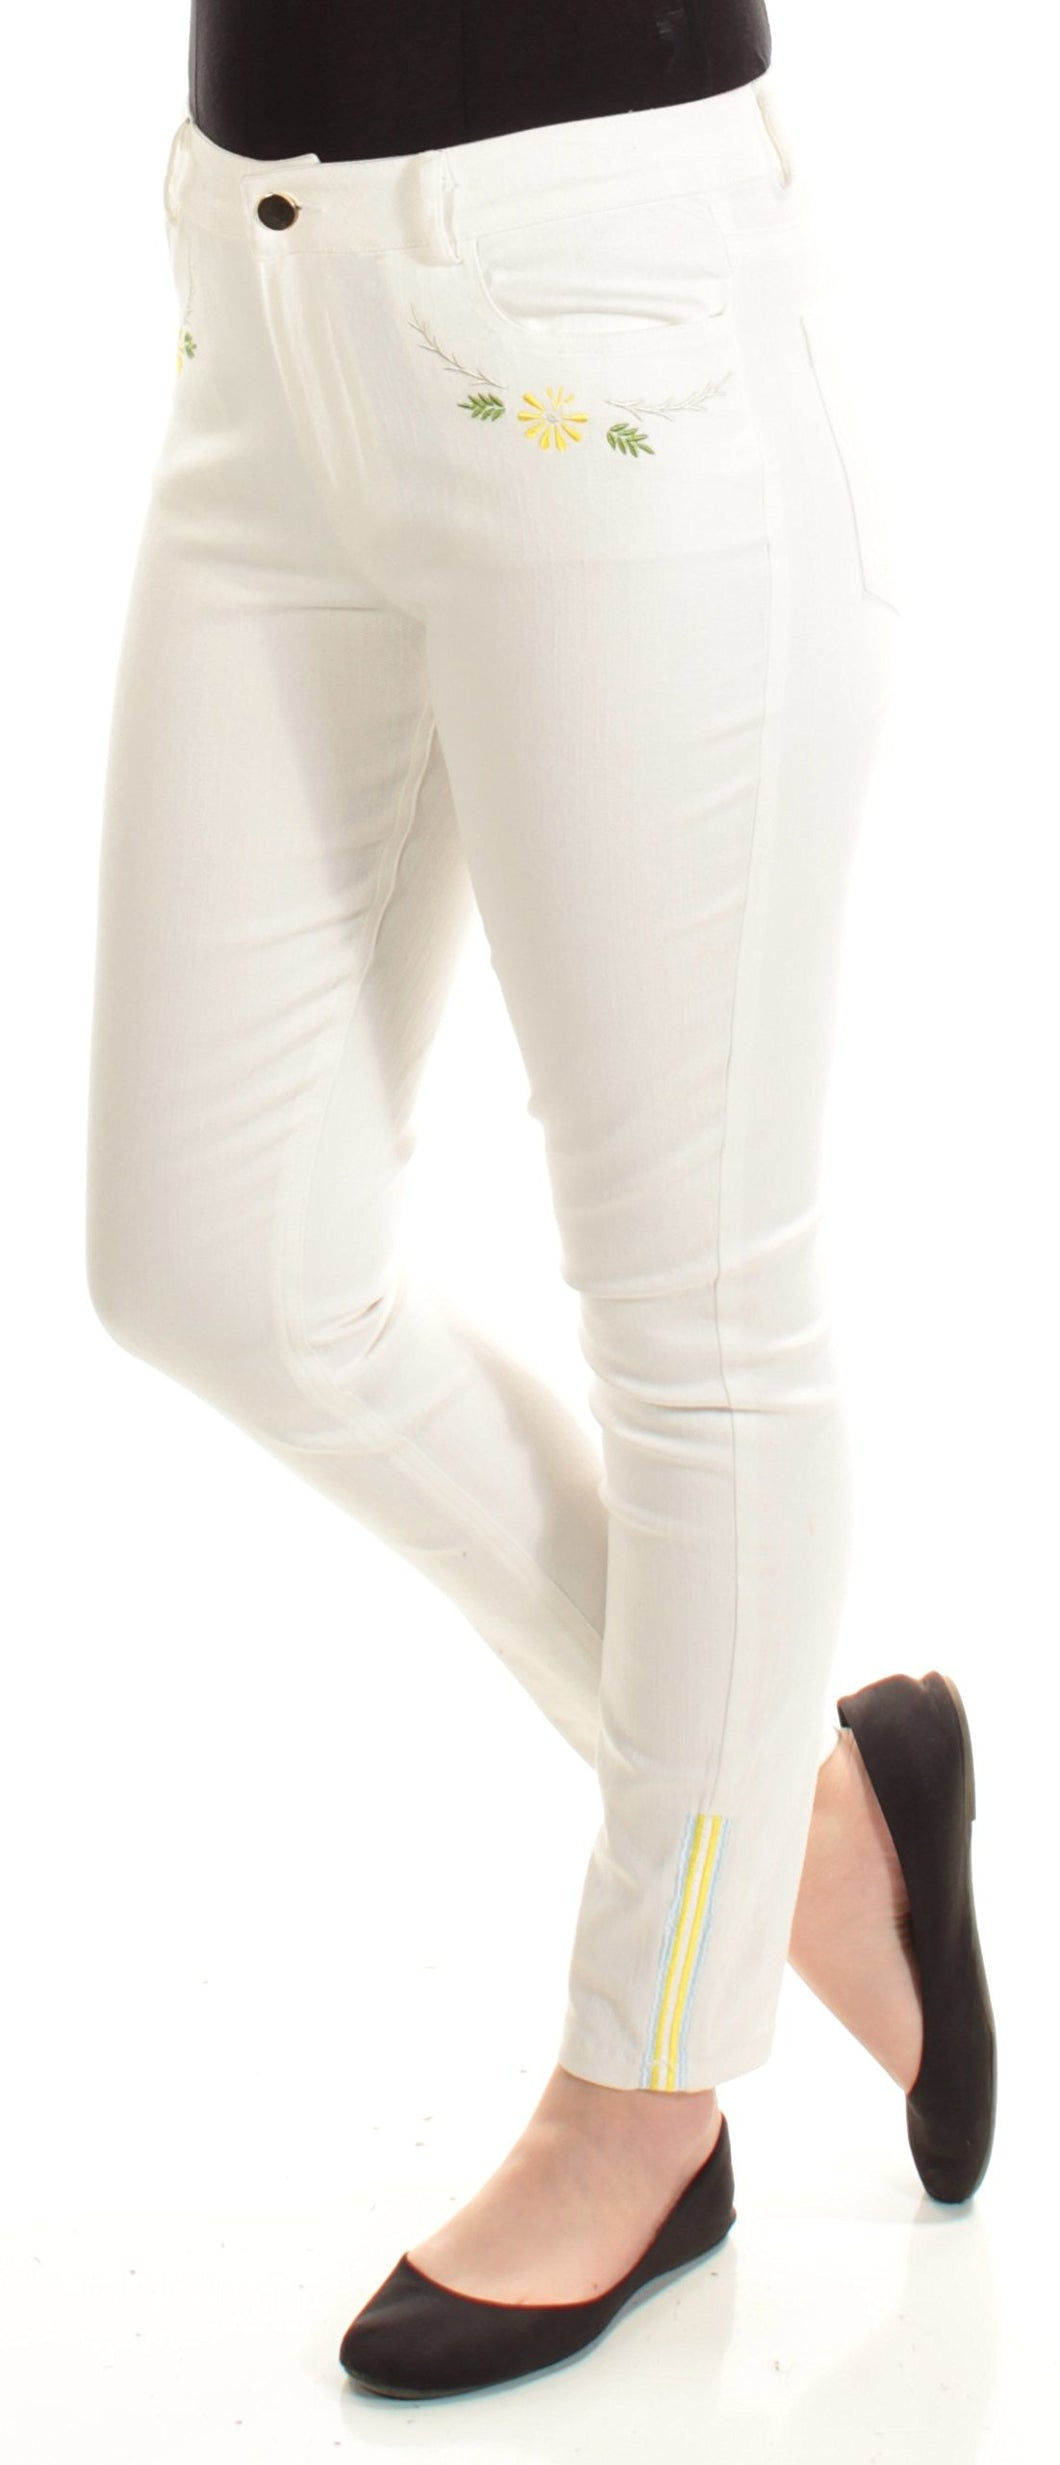 Cynthia Rowley Embroidered Skinny Jeans (White, 8) - Vancelette Global Art Acquisitions